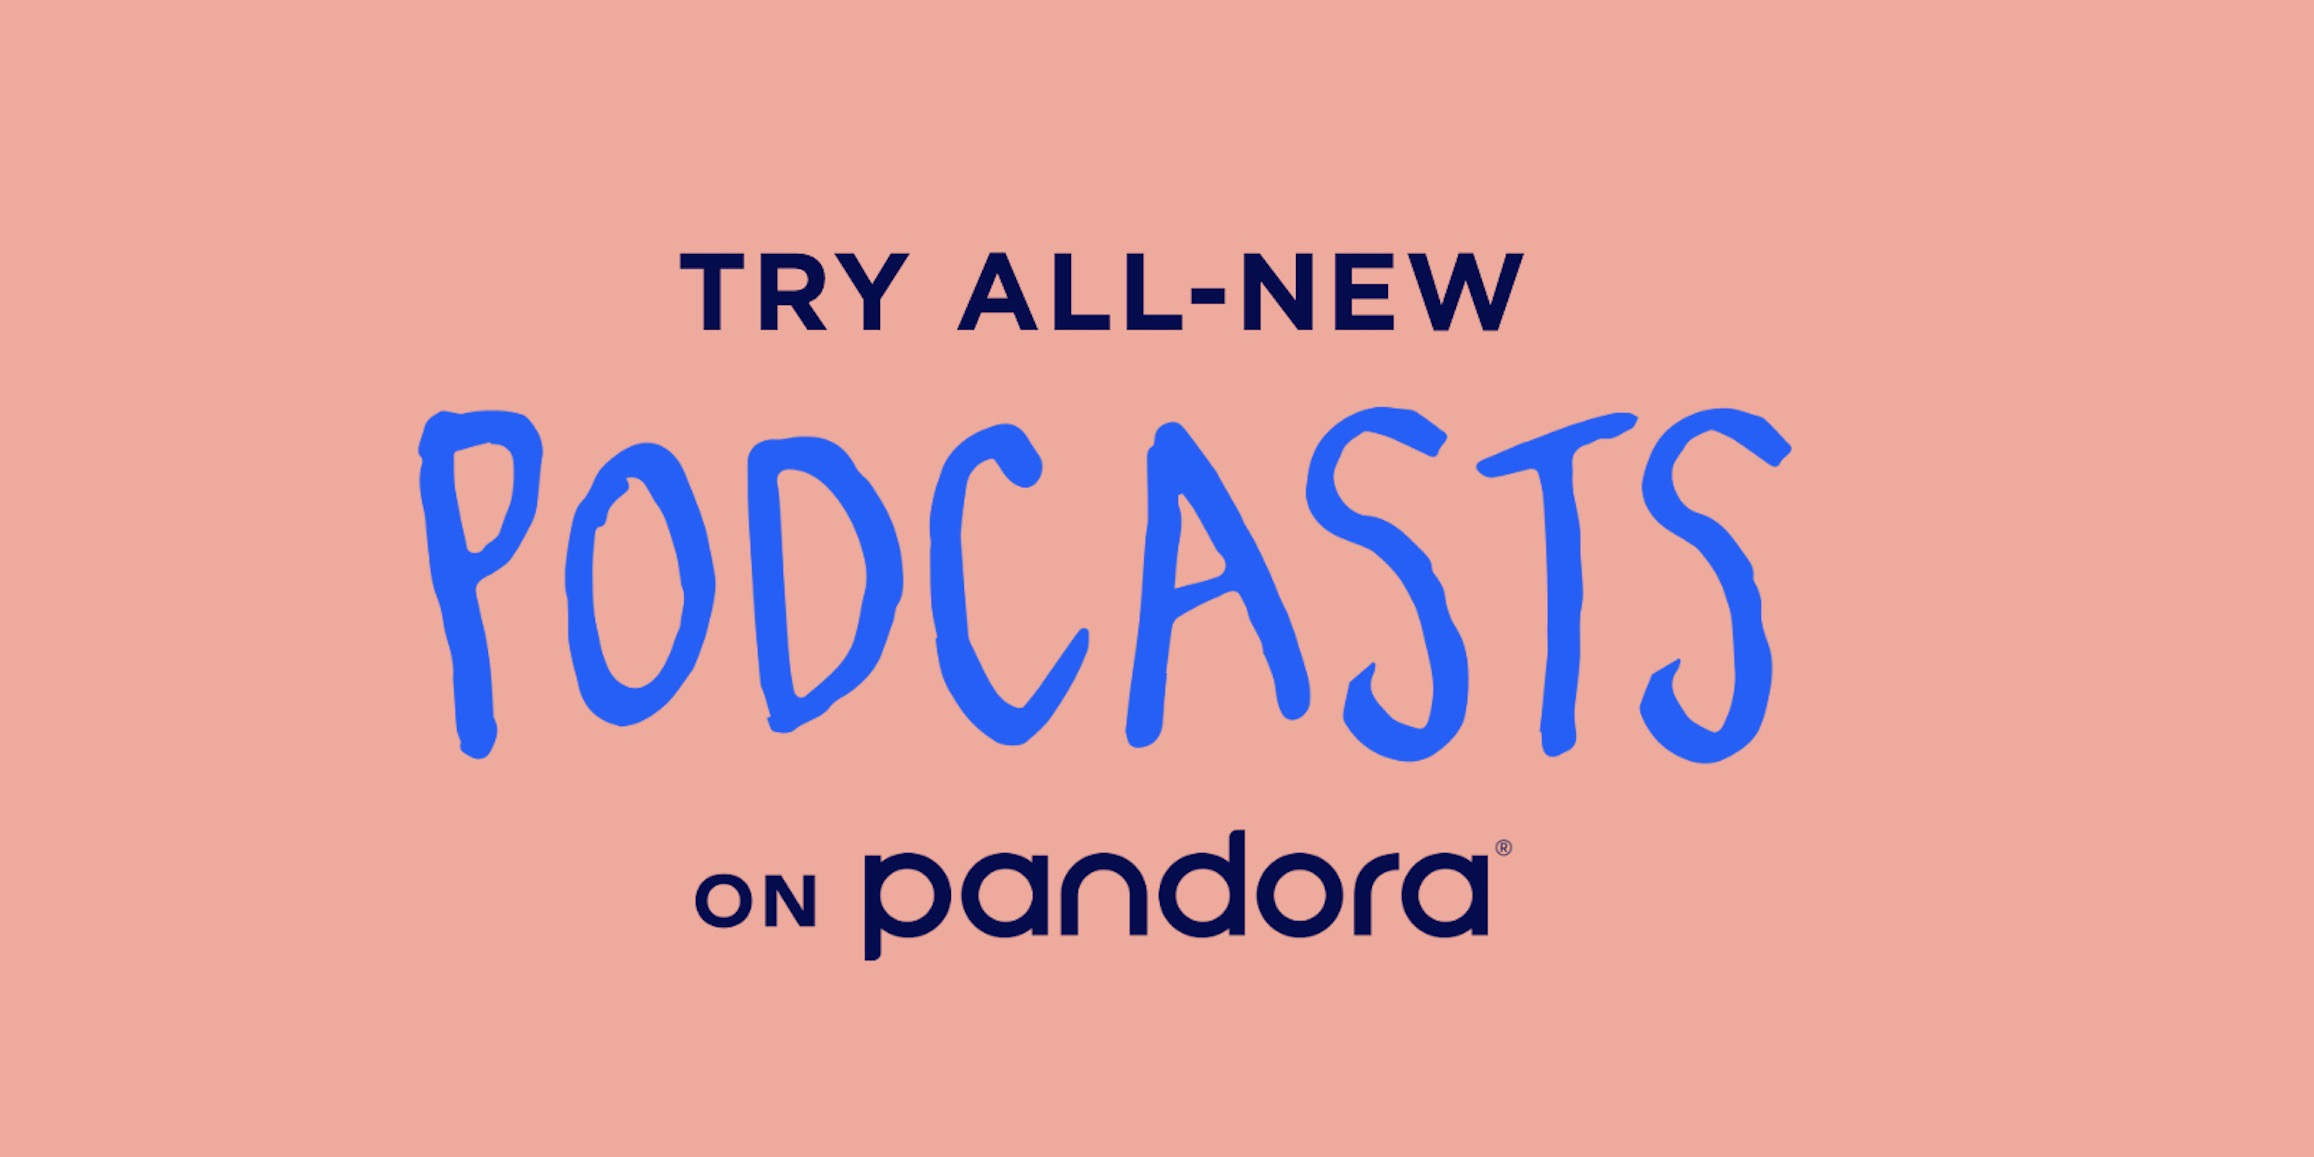 Pandora officially launches its Podcasts on Pandora platform for iOS with hundreds of podcasts from various genres